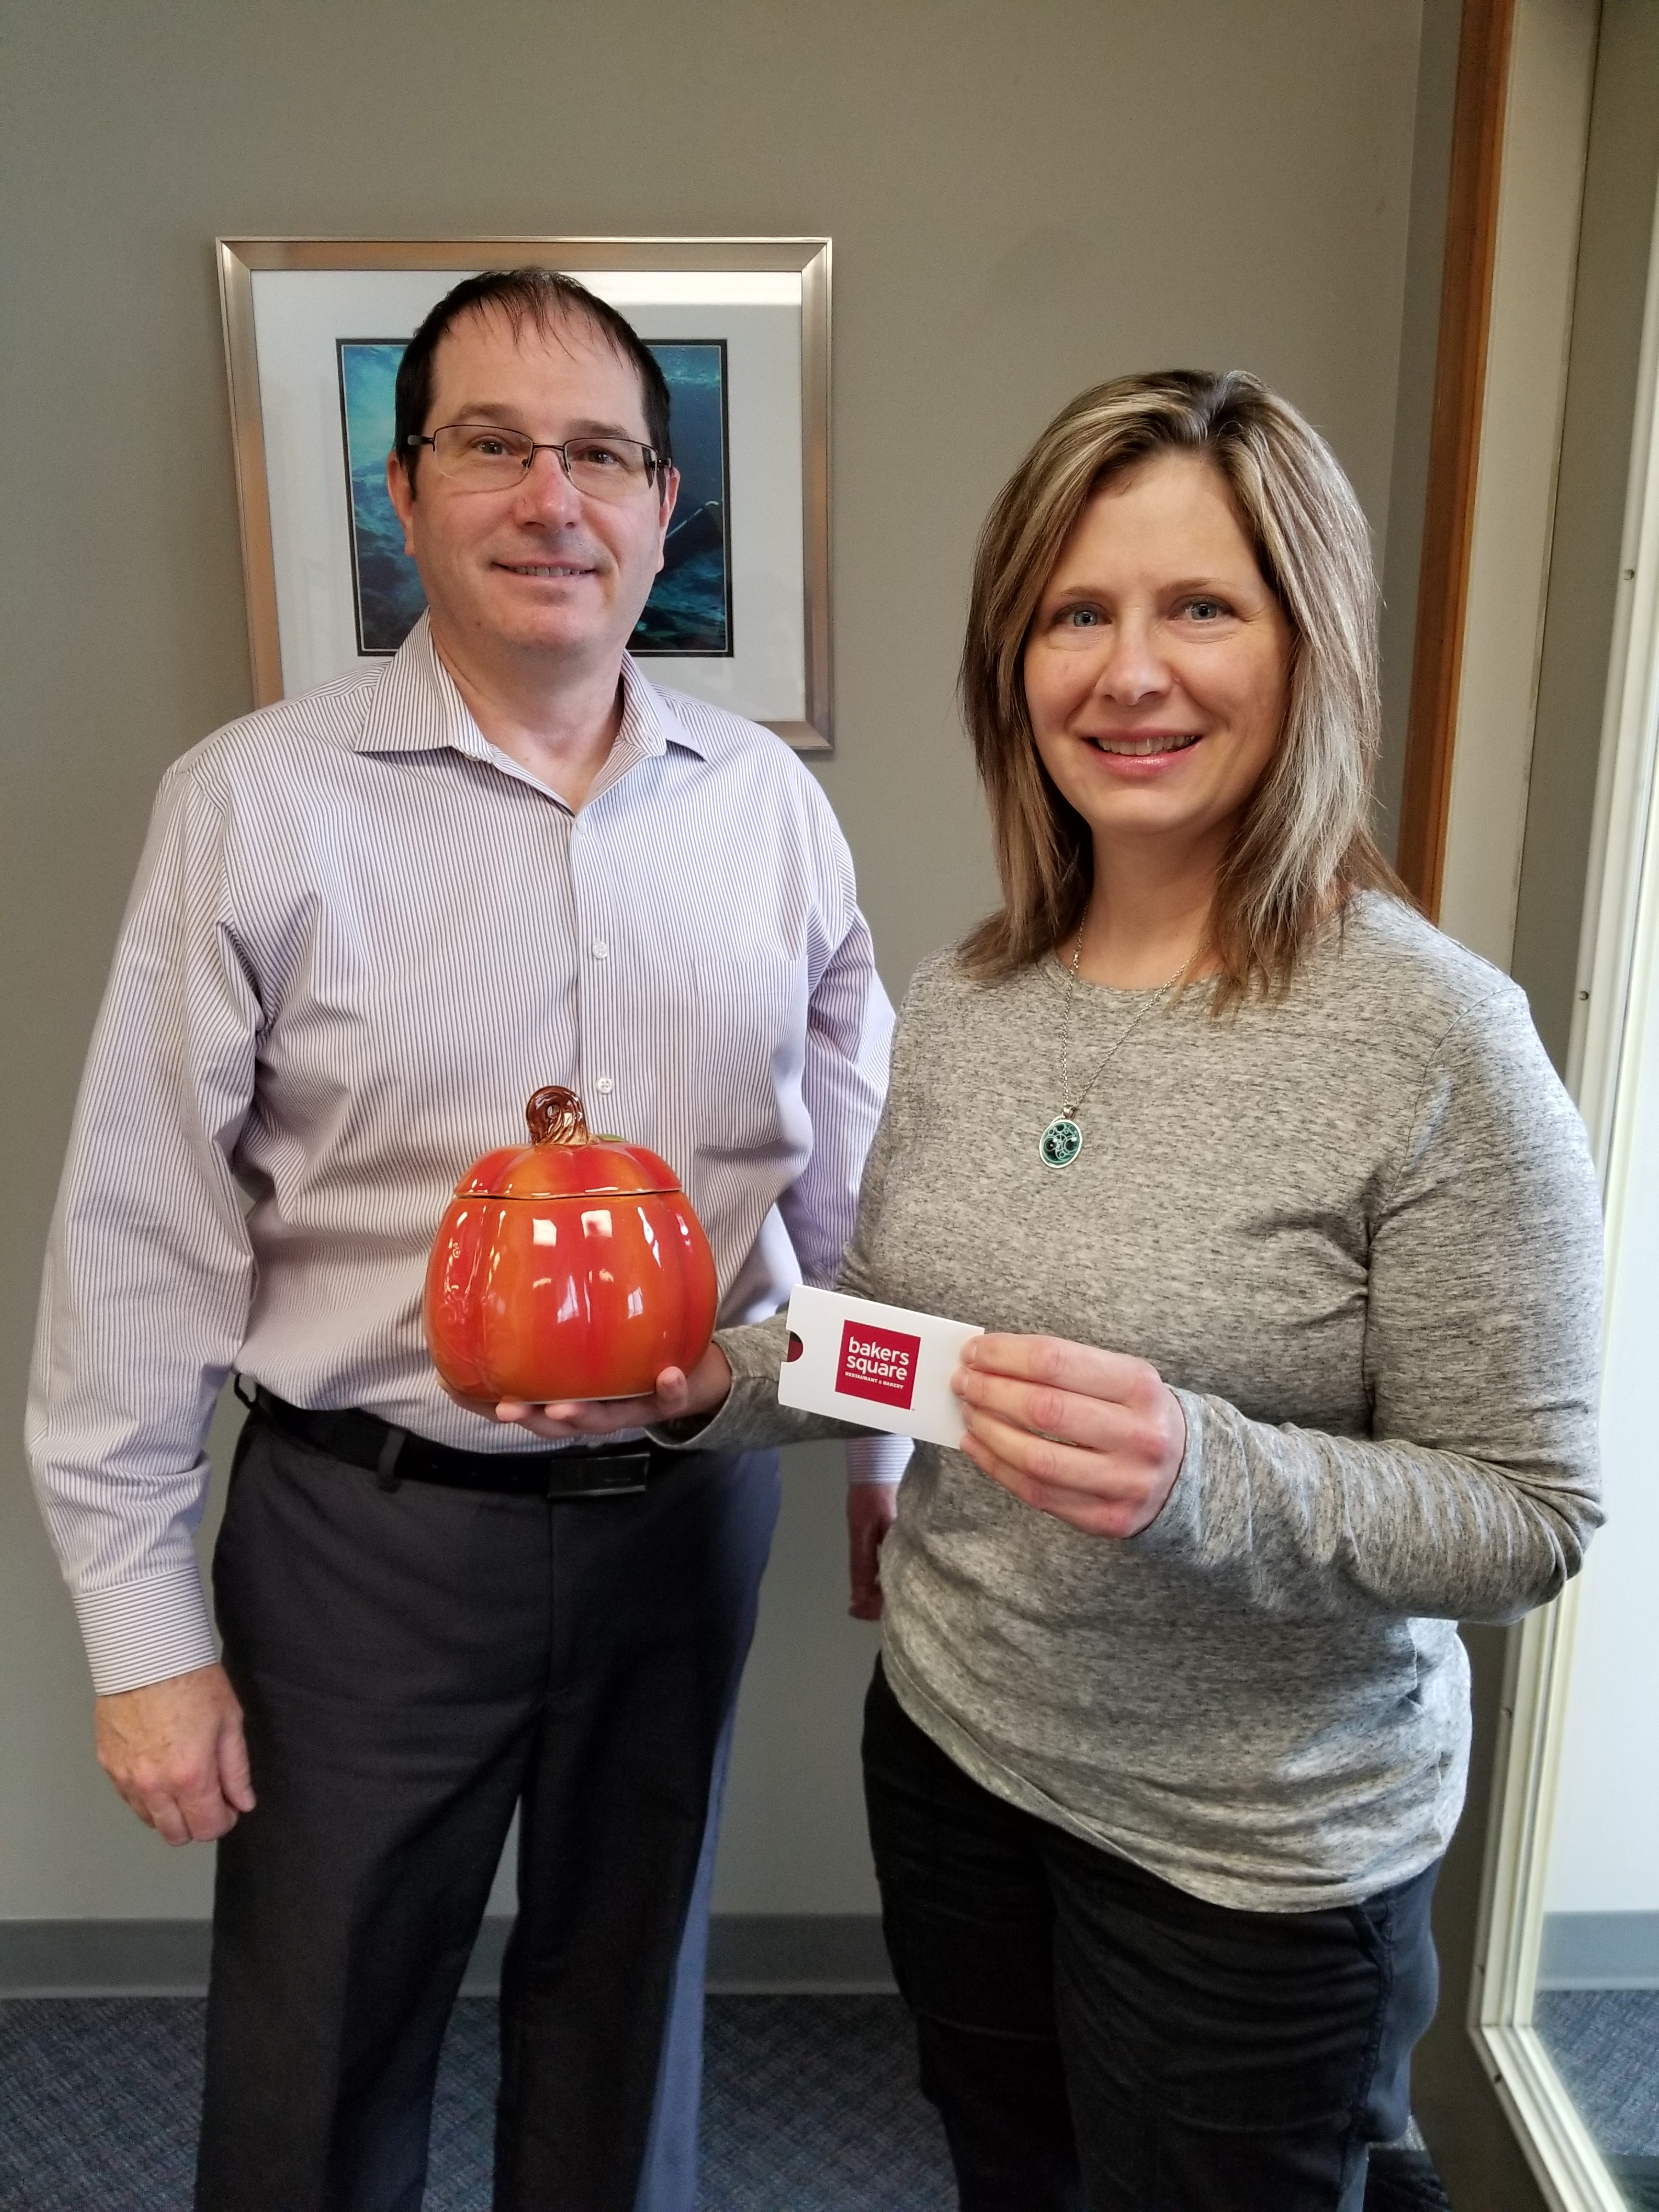 Picture of Dr. Michael Gordon and a patient after winning a contest in our Schereville dental office.